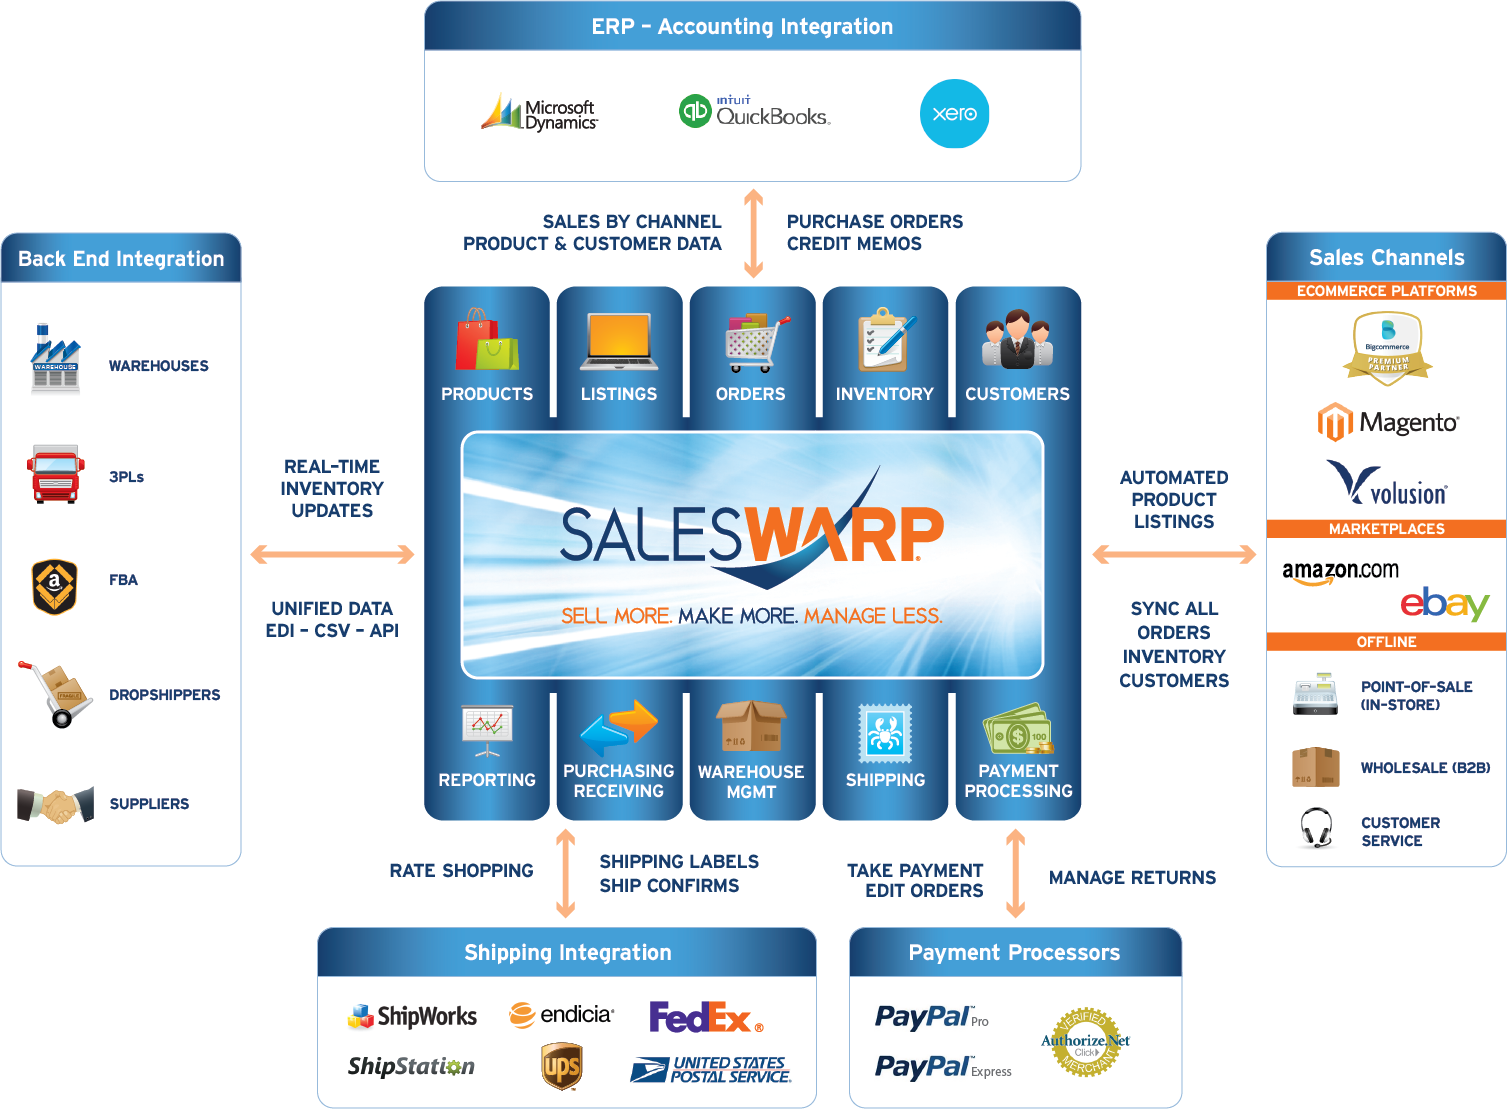 SalesWarp Omnichannel Commerce Management Software eCosystem: Sell More. Make More. Manage Less. Features: Product Management(PIM), Product Listing, Order Management System (OMS), Inventory Management, Customer Management, Reporting & Analytics, Supplier Management, Purchasing & Receiving, Fulfillment, Warehouse Management System (WMS), Payment Processing, ERP & Accounting Integration, Shipping Integration, Omnichannel Commerce, Back-end Integration, Multichannel Retail, Big Commerce, Magento, Volusion, eBay, Amazon, POS, B2B, Call Centers